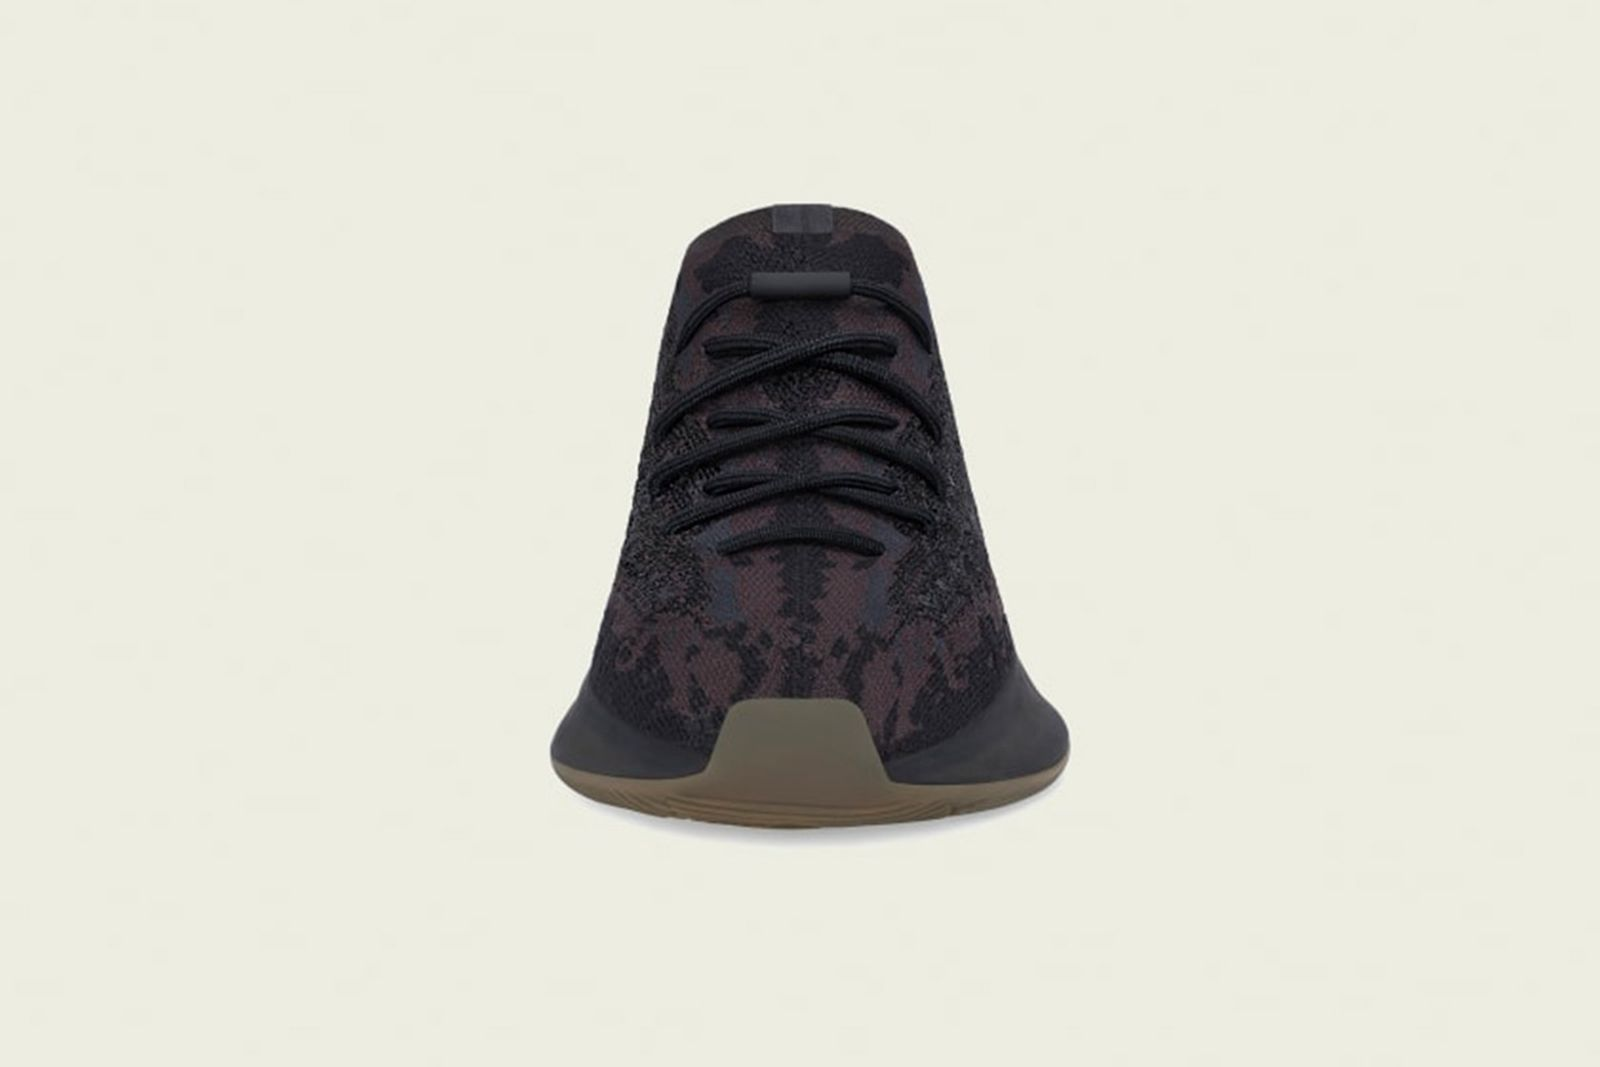 adidas-yeezy-boost-380-onyx-release-date-price-12